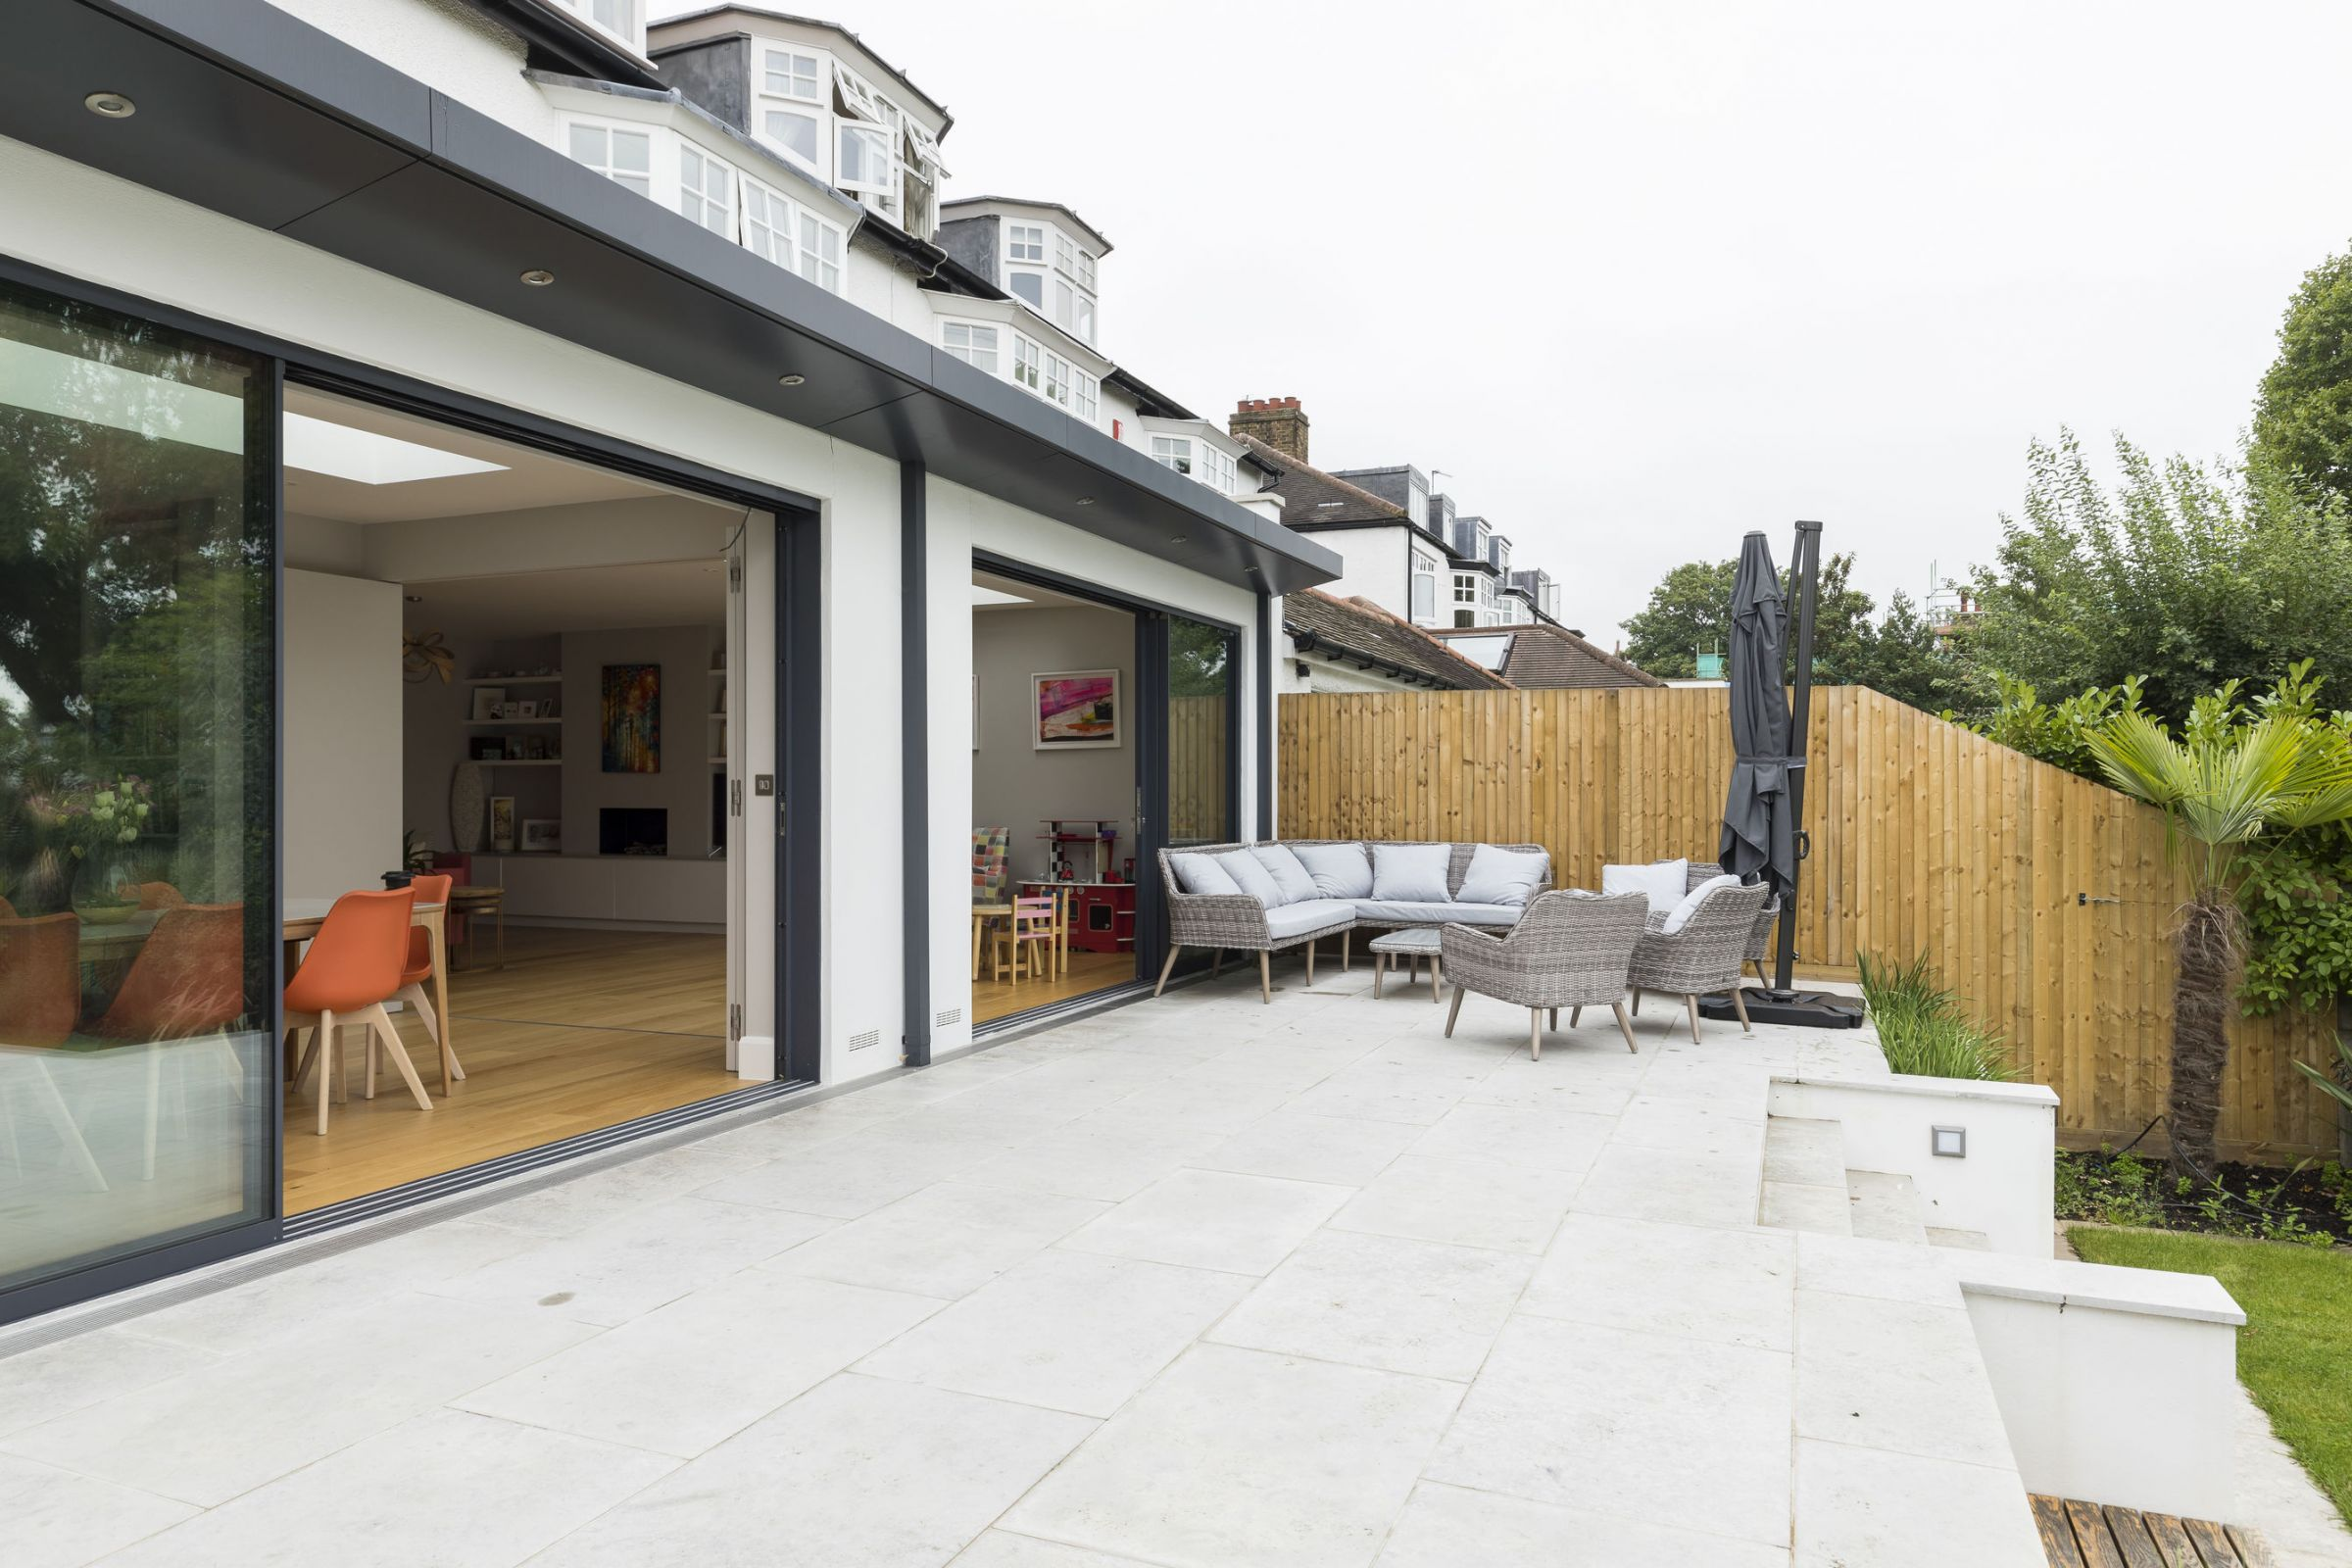 House extension and renovation in Dulwich, London